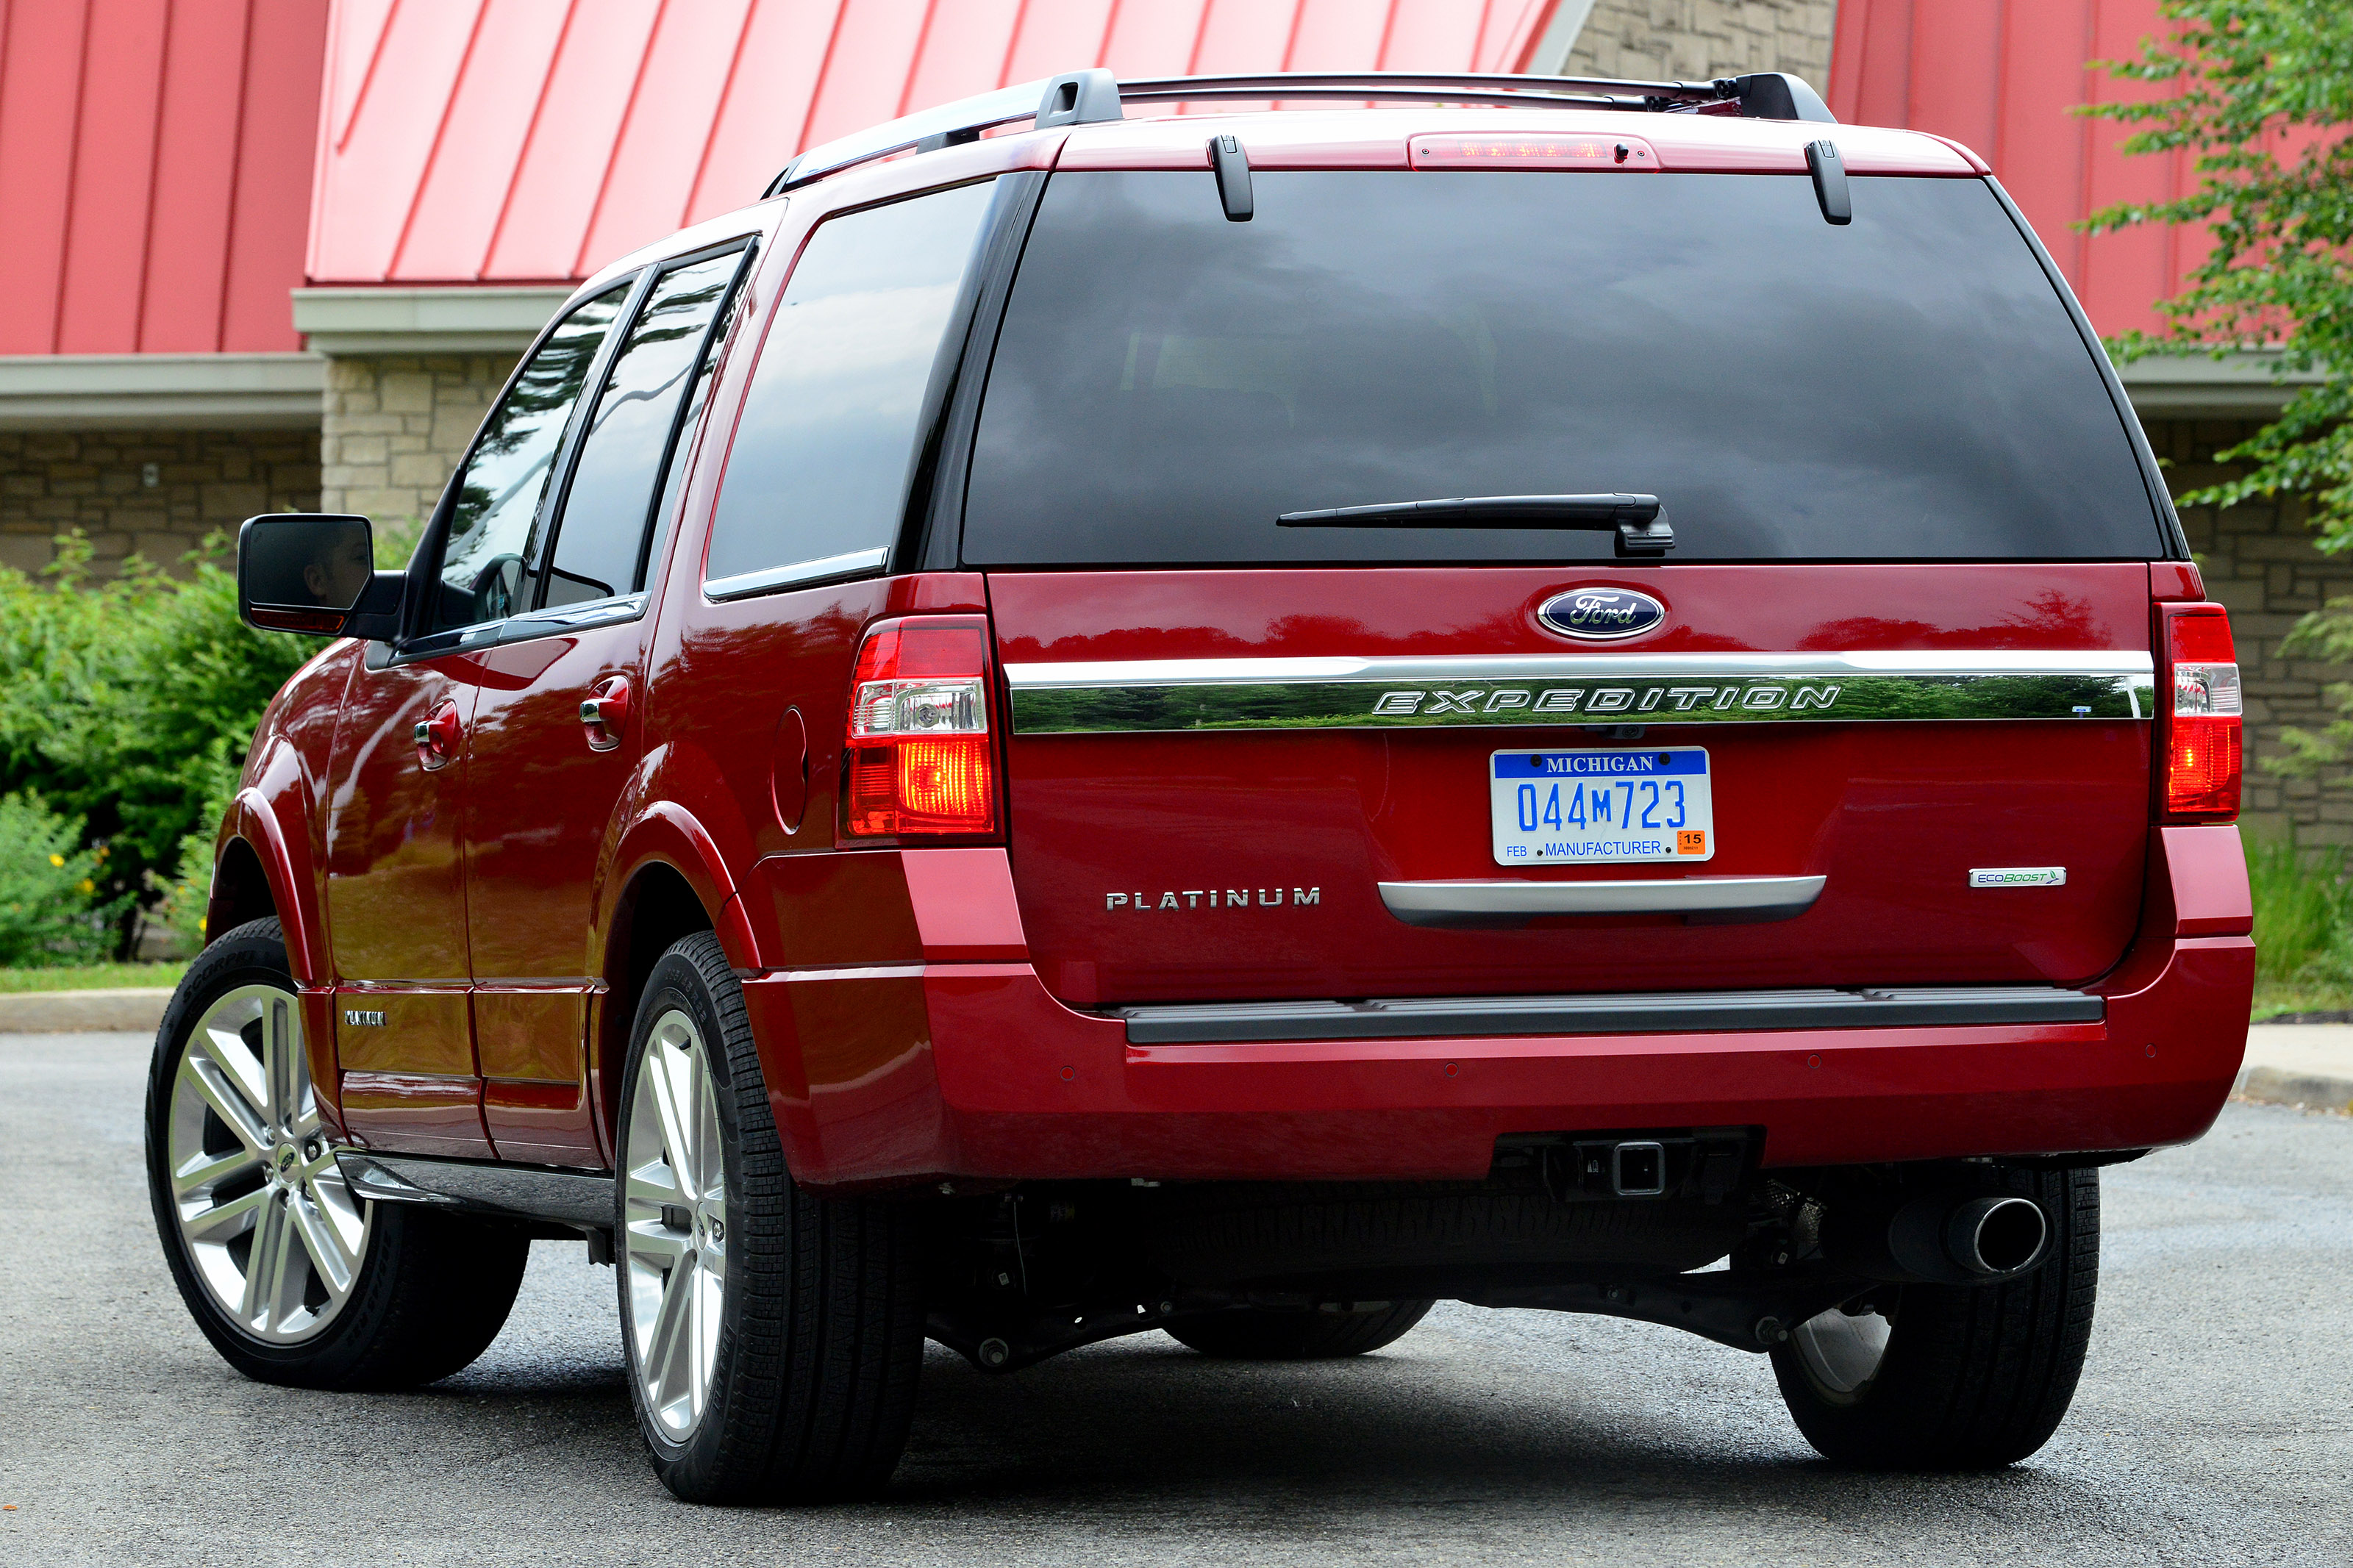 Ford Expedition exterior restyling